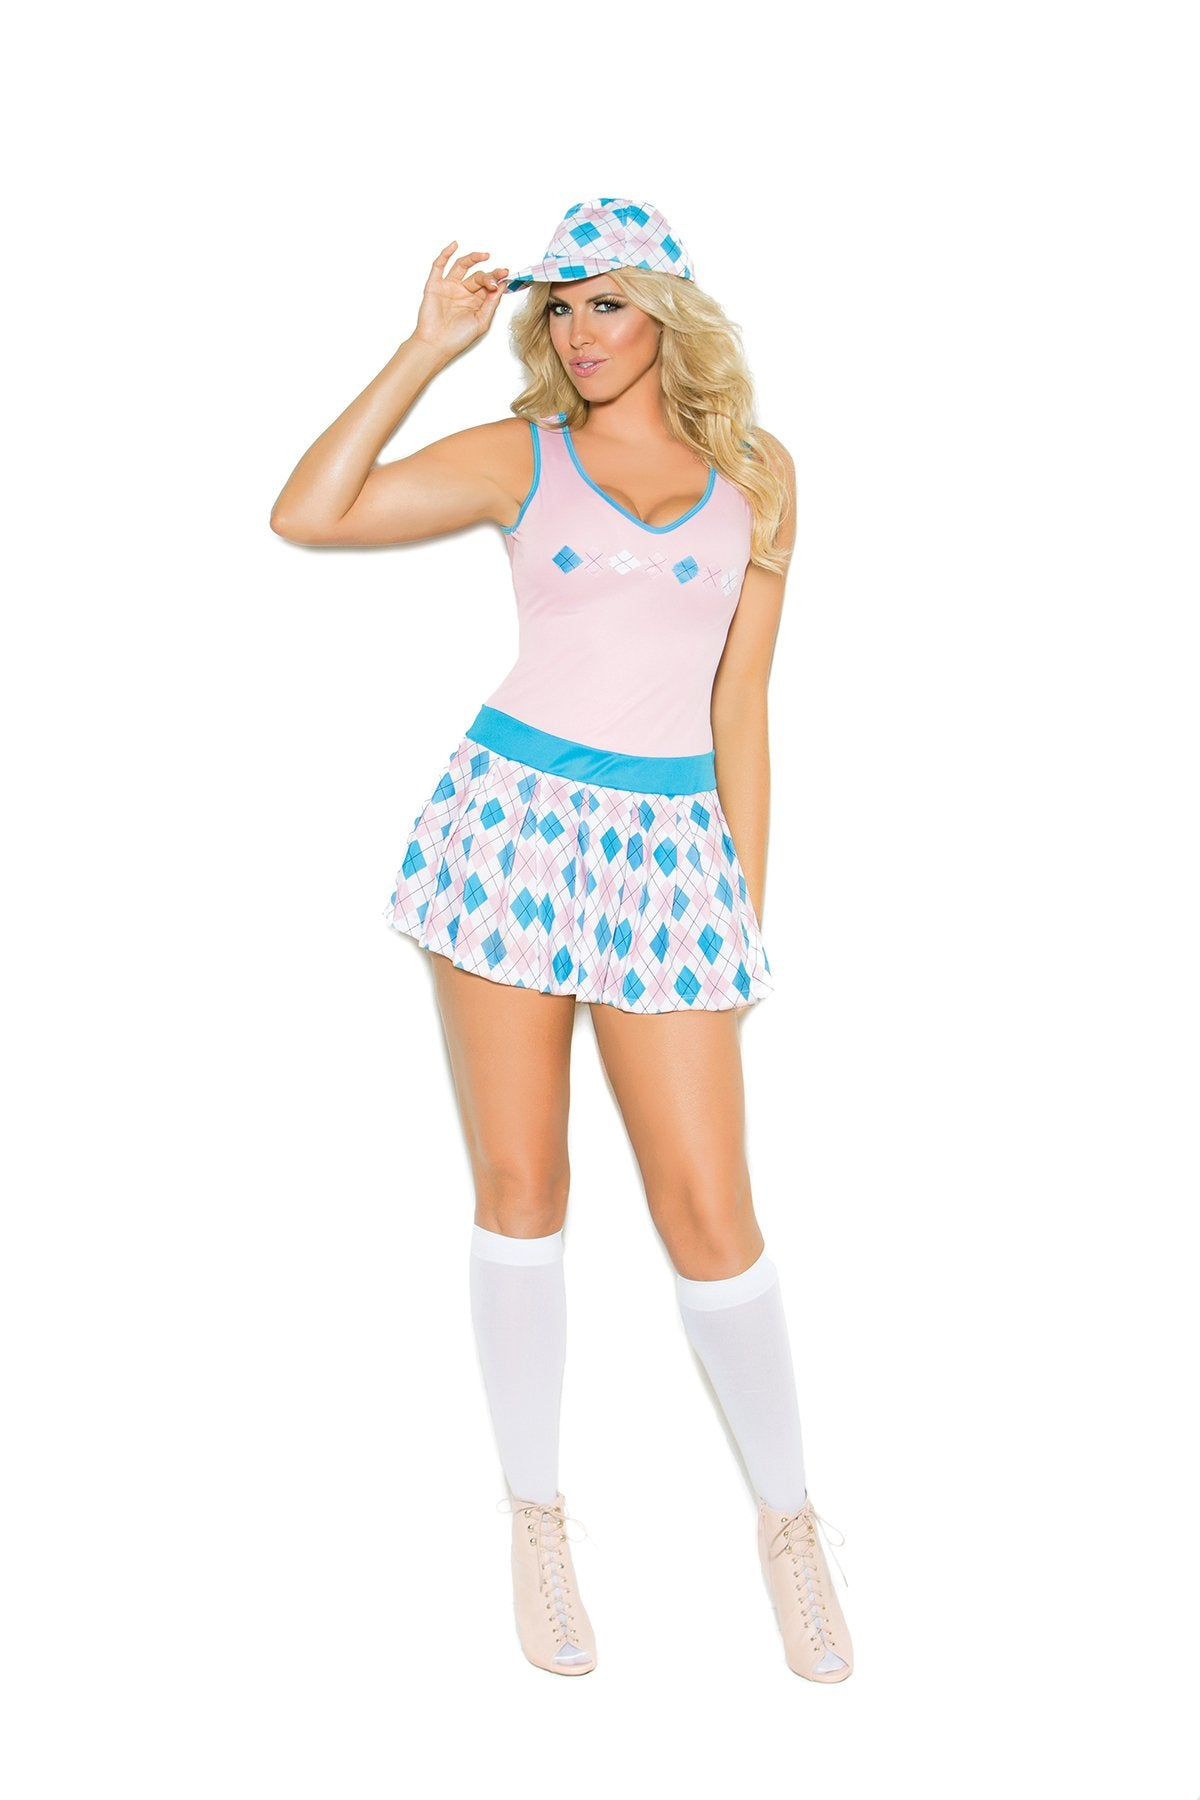 Golf Tease Costume costumes size mediumcolor pinkNakees